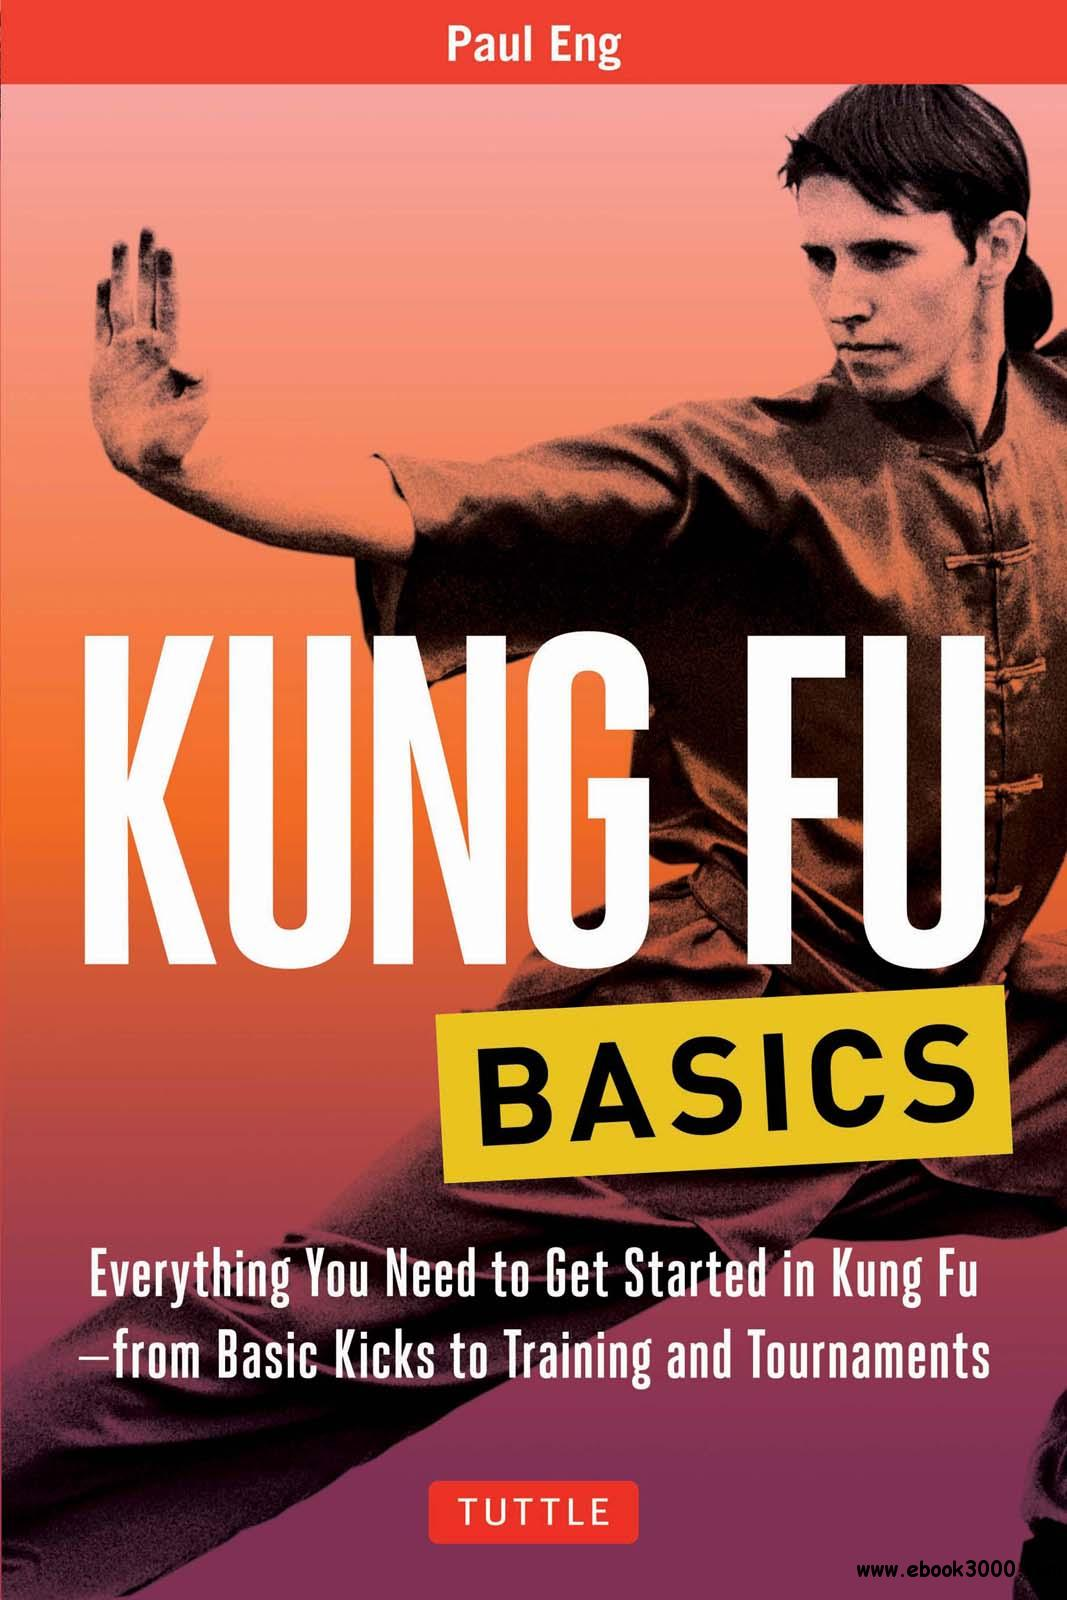 Kung Fu Basics: Everything You Need to Get Started in Kung Fu - from Basic Kicks to Training and Tournaments